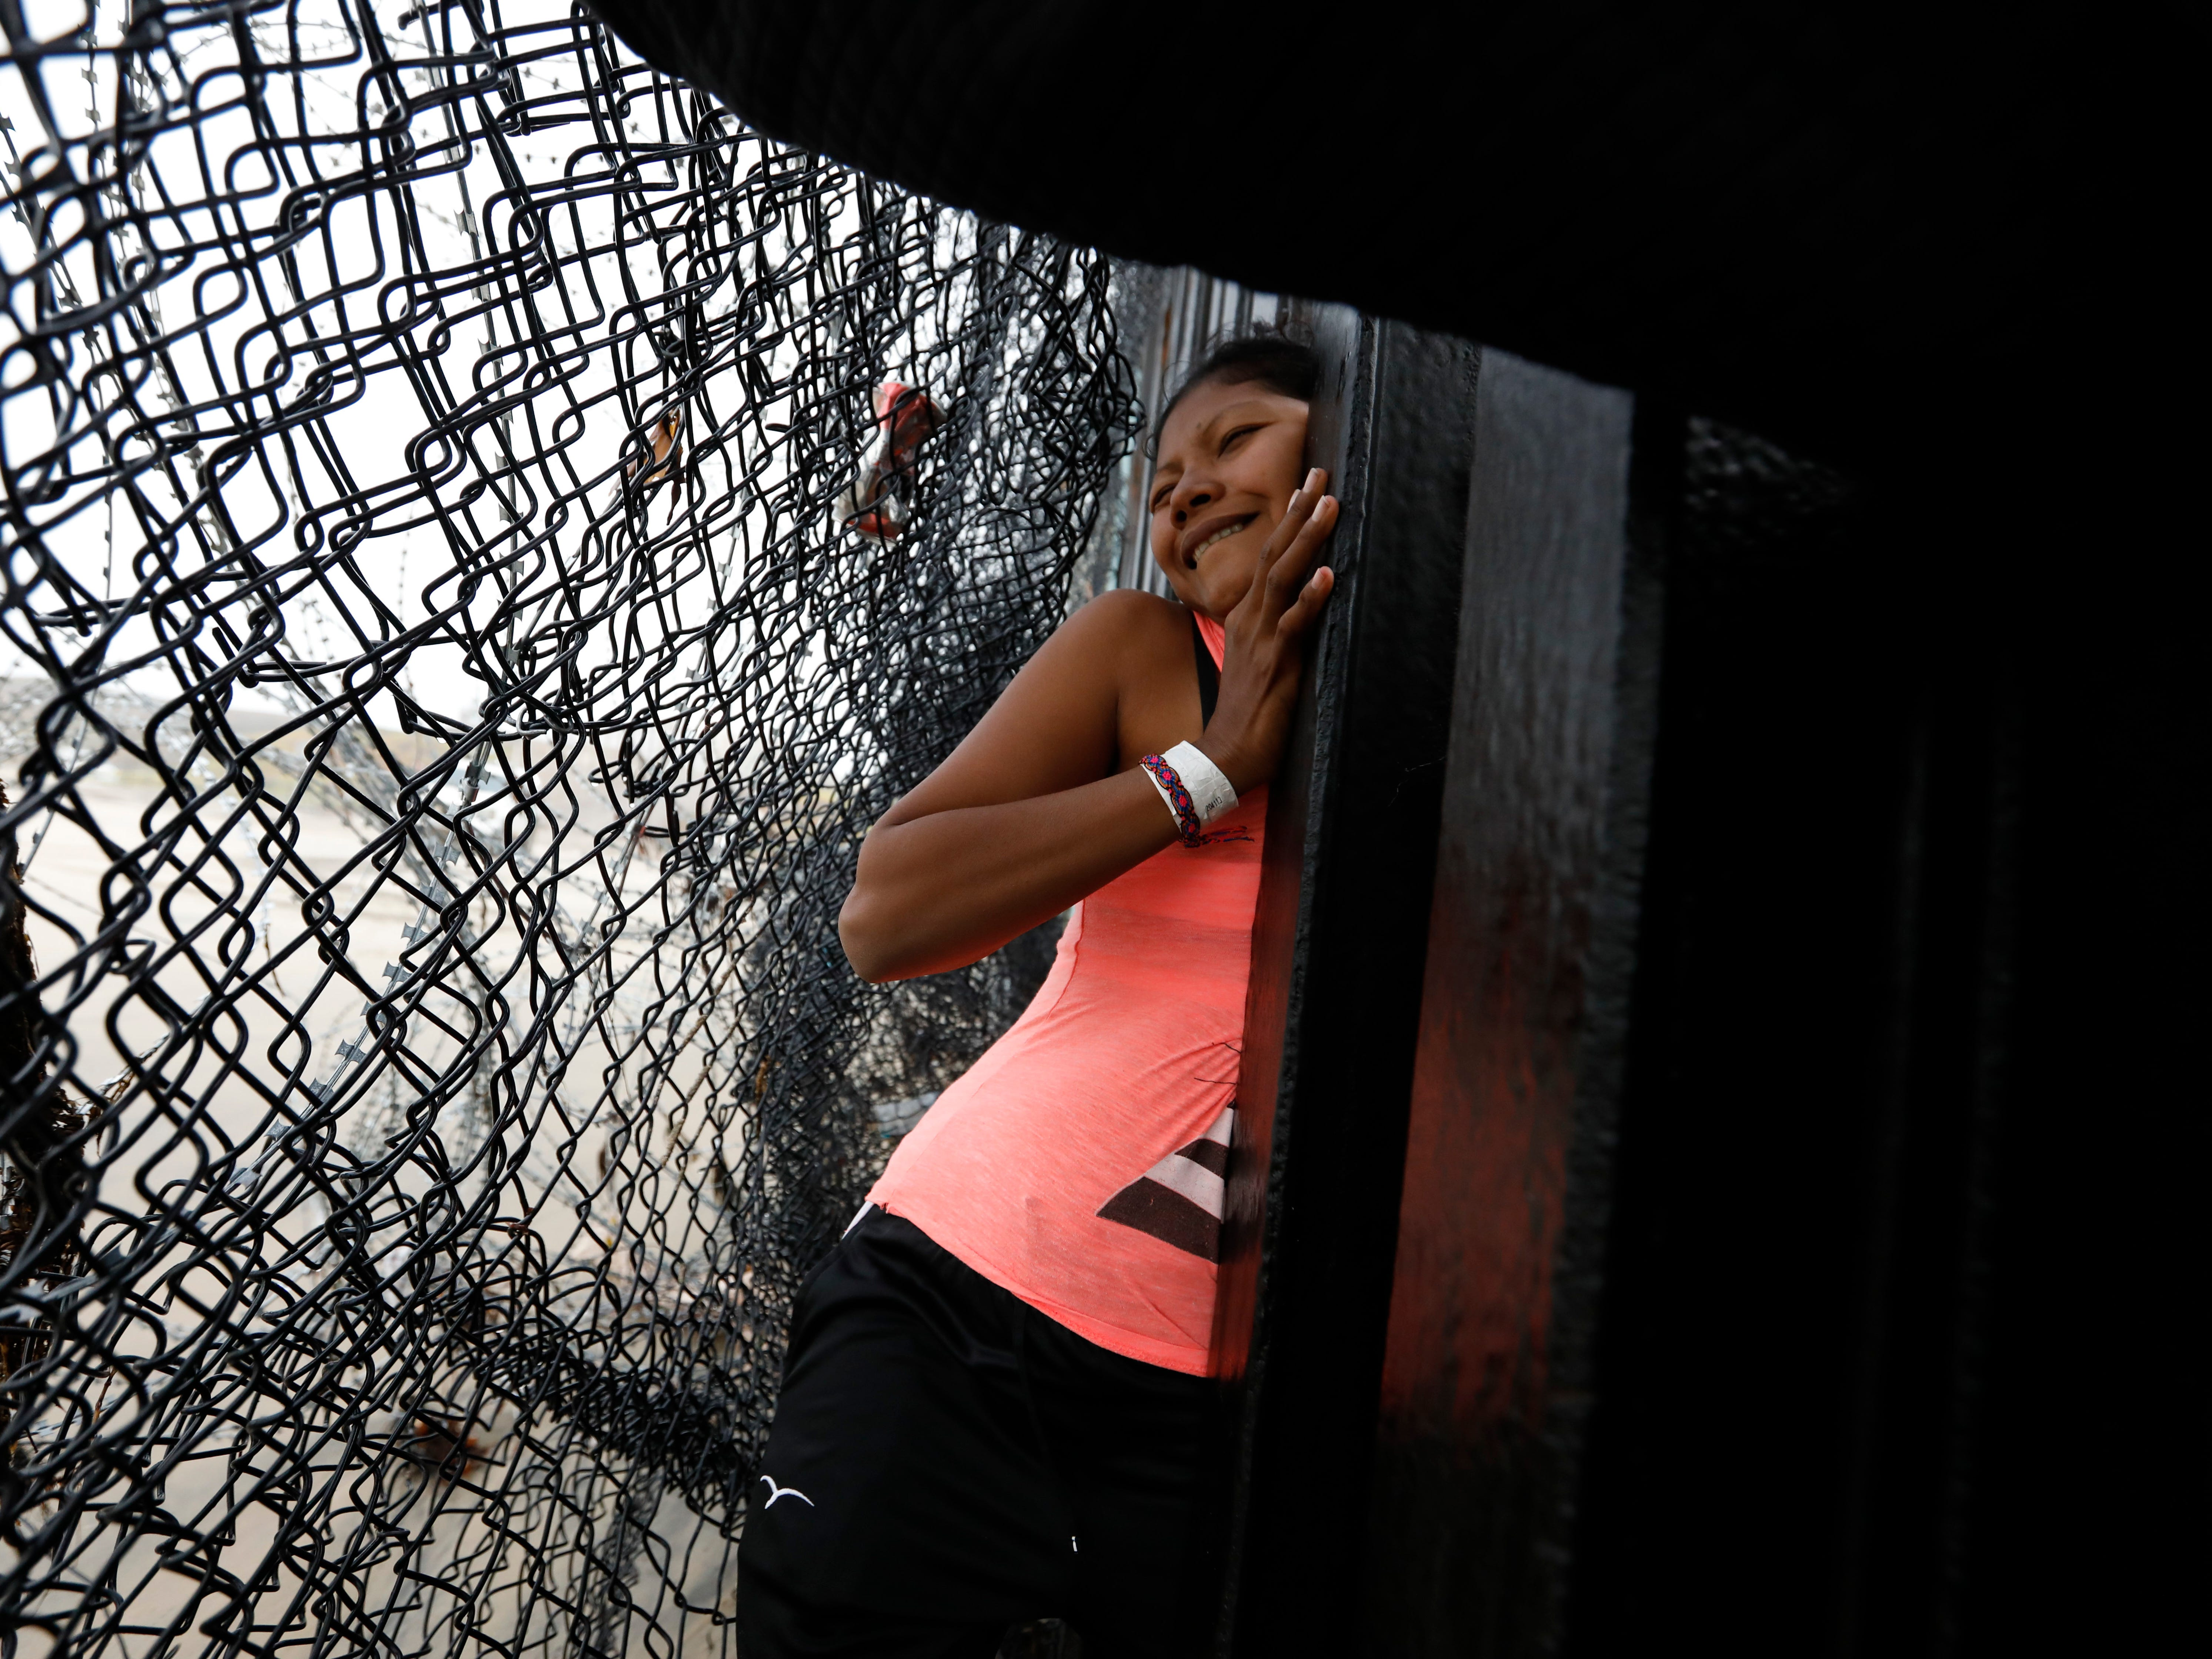 A Honduran migrant, followed by her daughter, squeezes through a gap in the border wall near Tijuana, Mexico on Dec. 9, 2018. Discouraged by the long wait to apply for asylum through official ports of entry, many Central American migrants from recent caravans are choosing to cross the U.S. border wall illegally and hand themselves in to Border Patrol agents to request asylum.